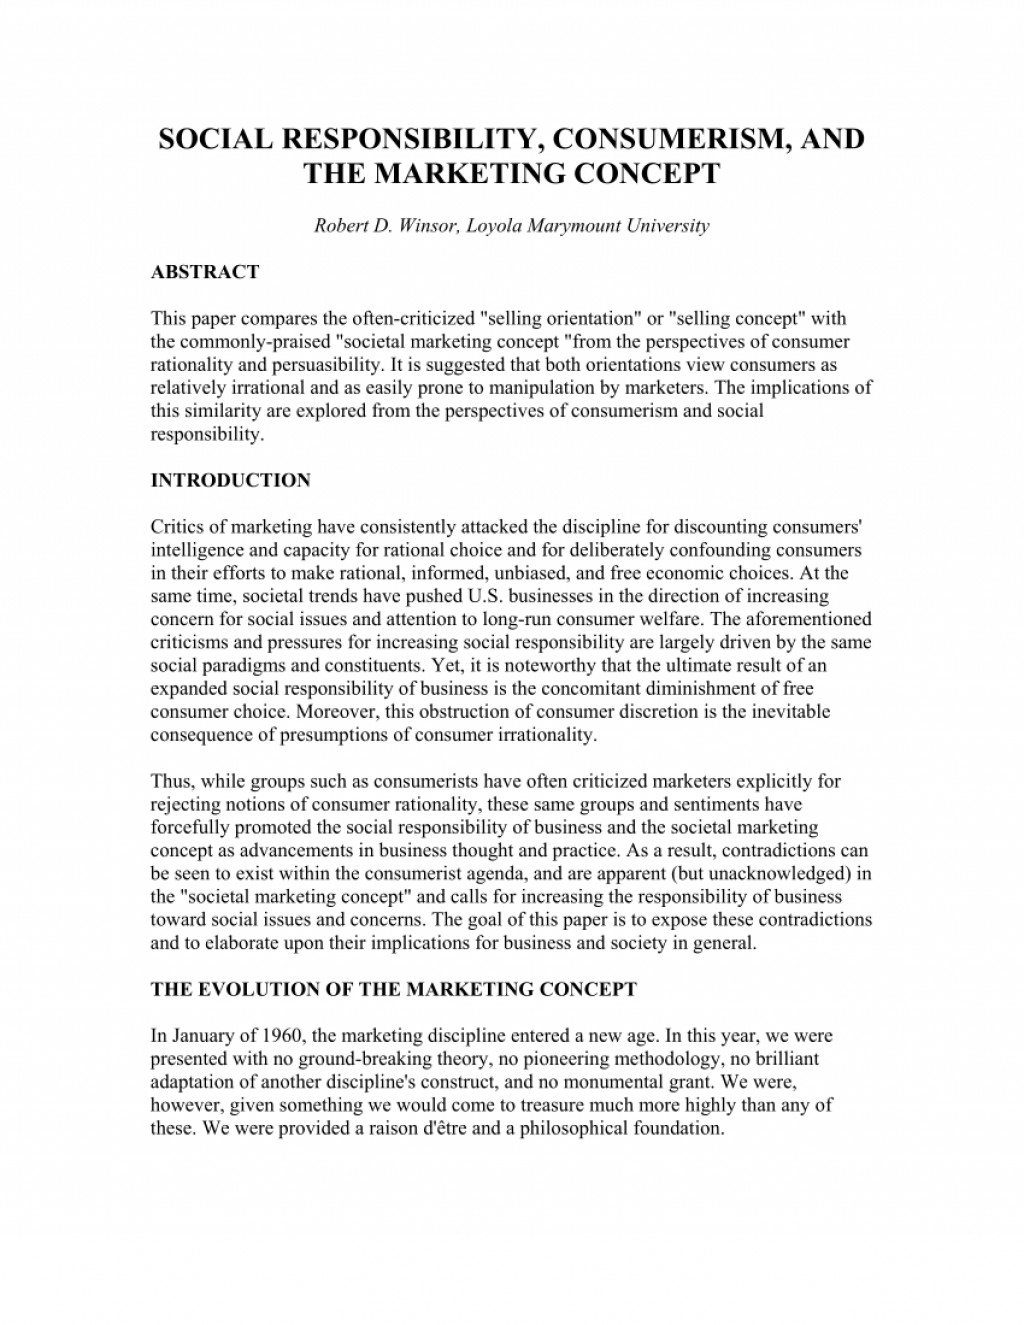 023 Research Paper Largepreview Best Topics For Unique Marketing Large